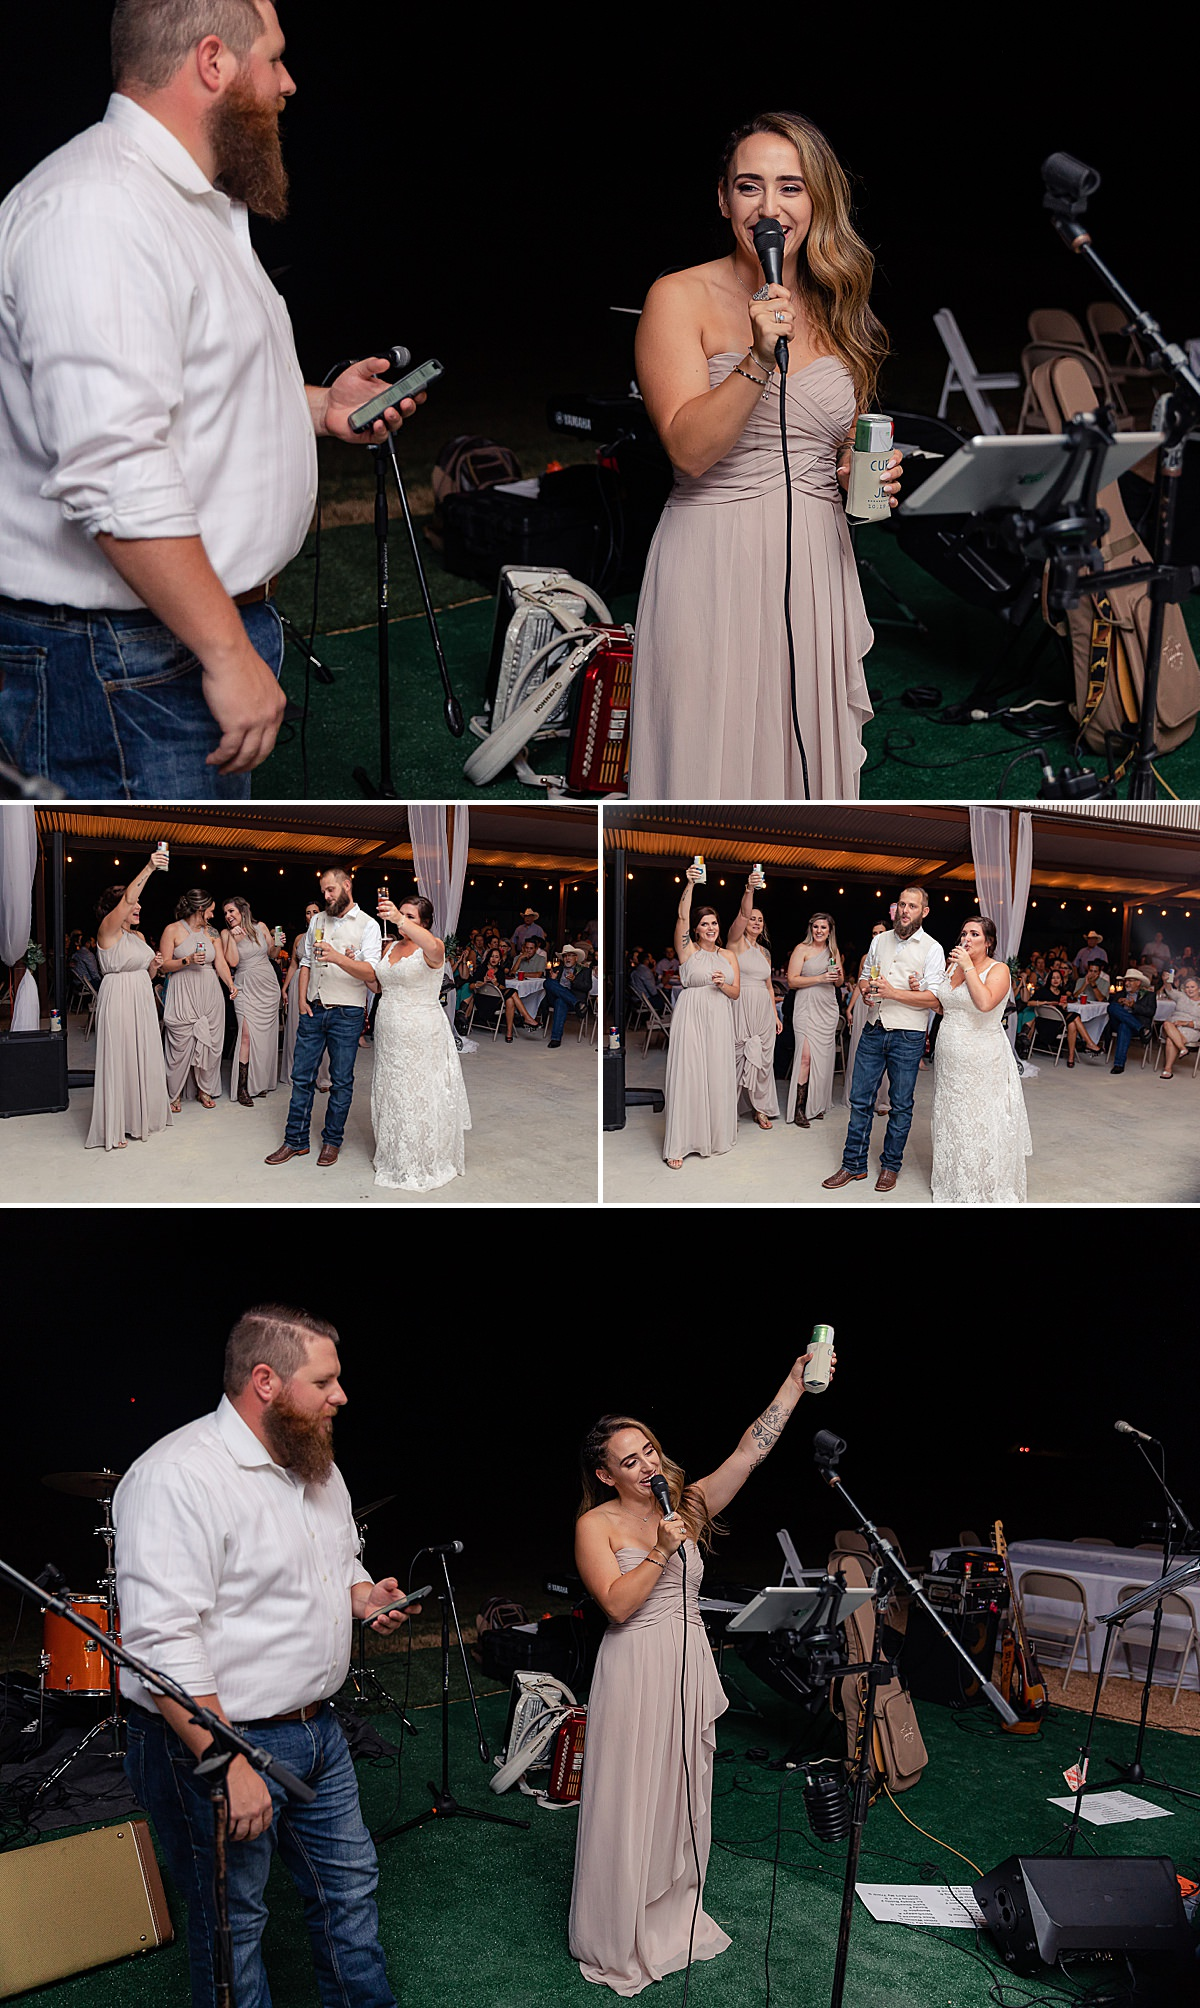 Rustic-Texas-Wedding-Hollow-Creek-Ranch-Carly-Barton-Photography_0020.jpg